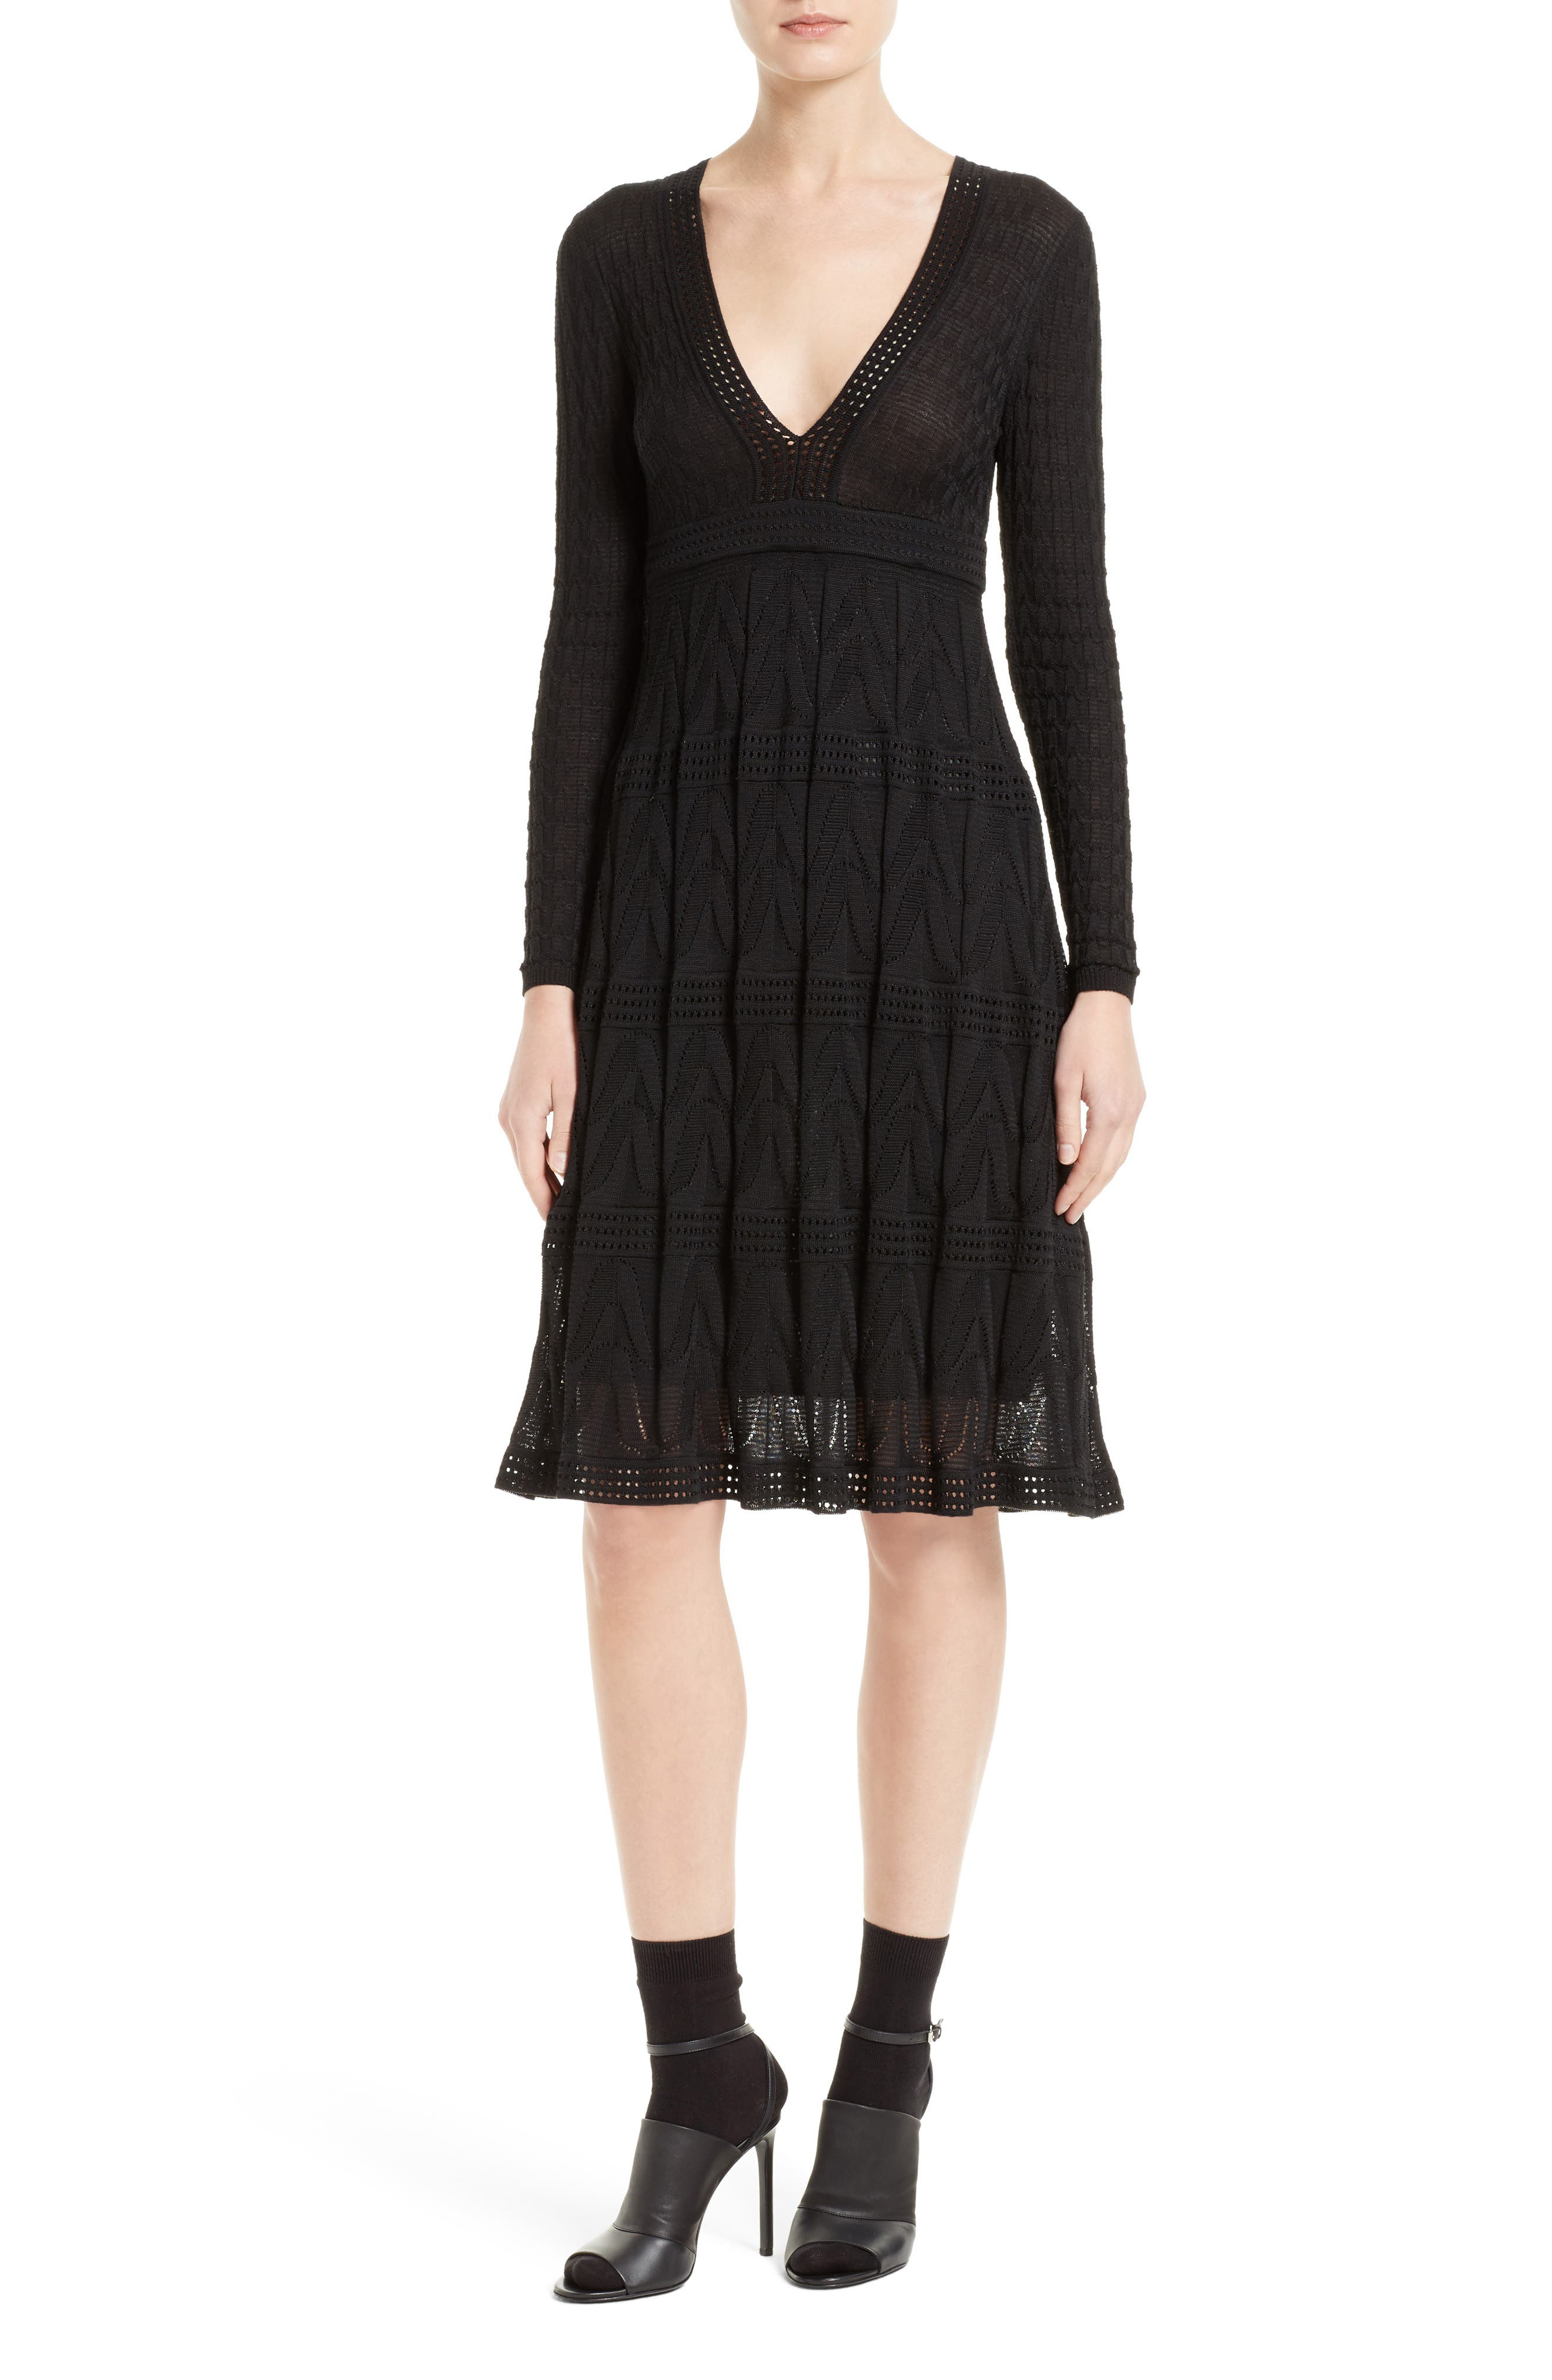 M Missoni Wool Blend Empire Waist Dress